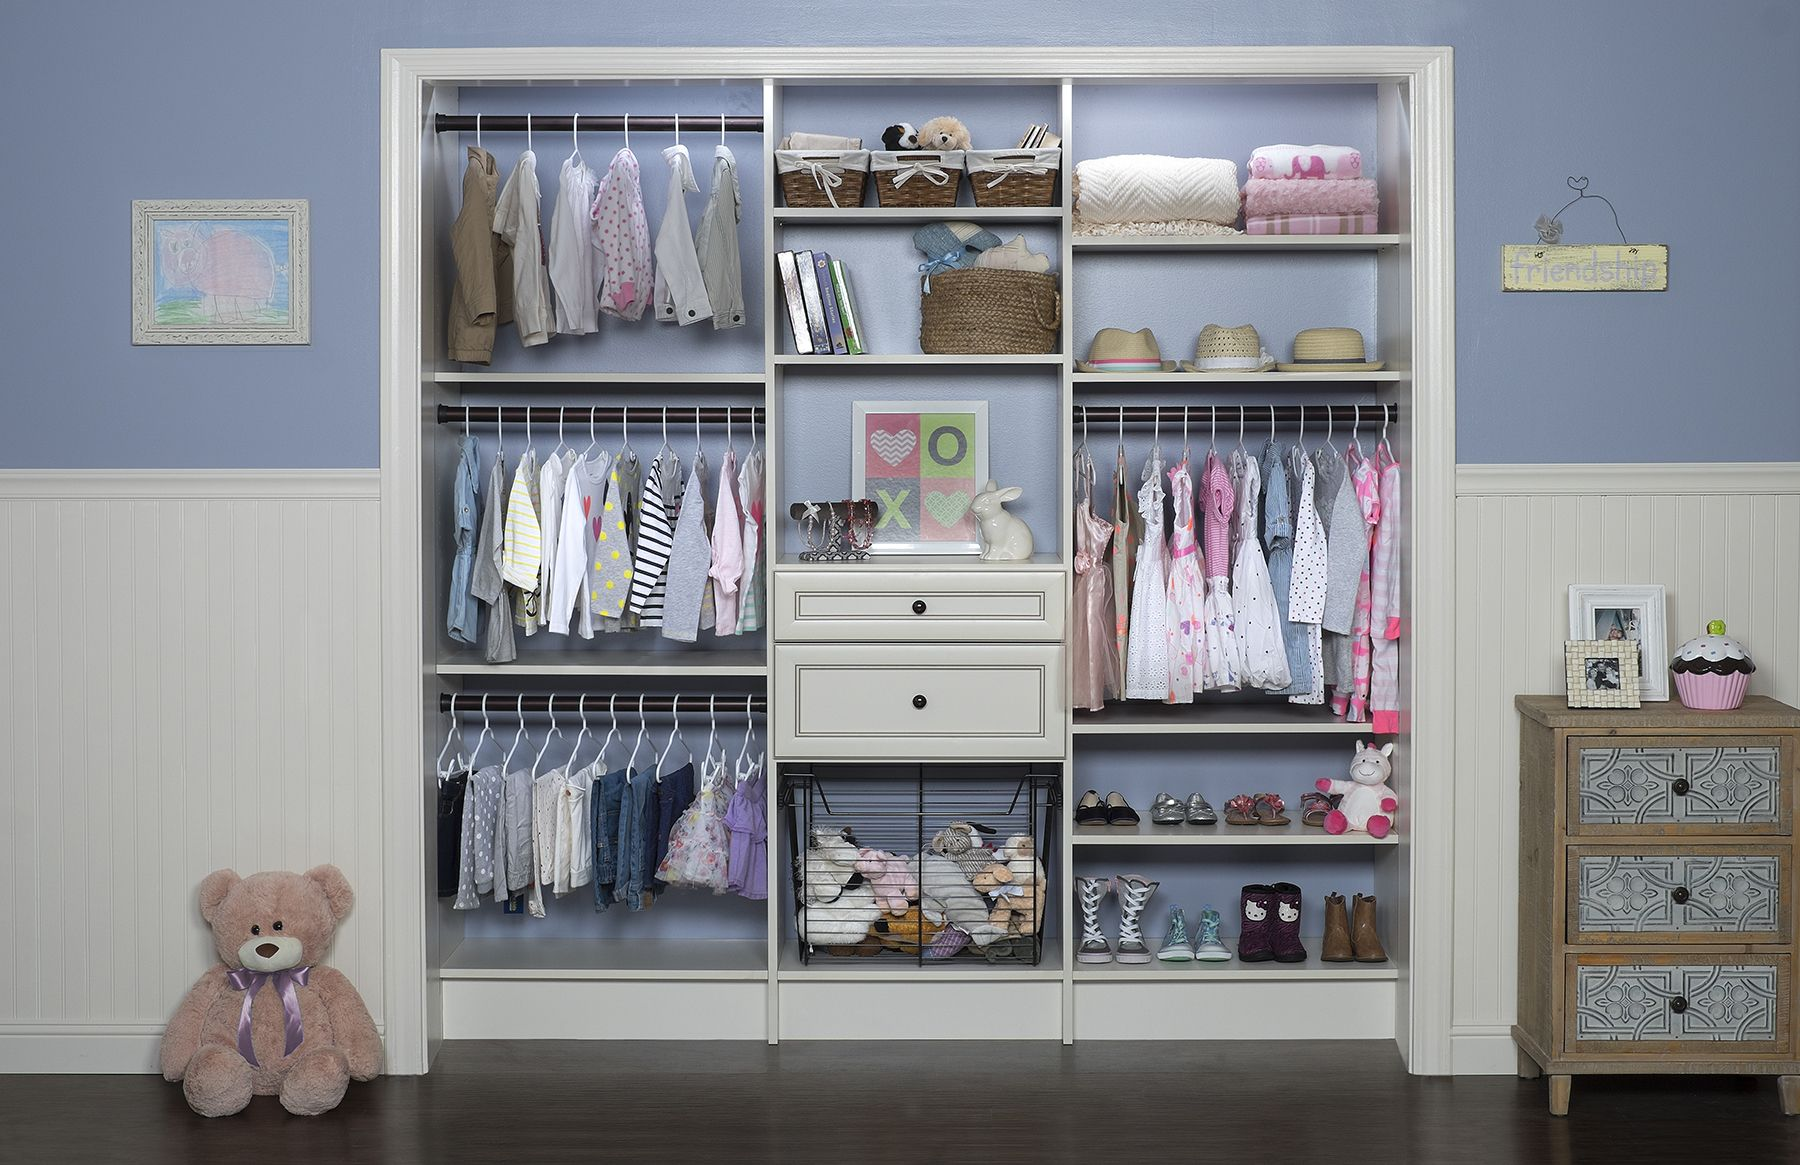 48 Best Ideas About Closets On Pinterest   Closet Organization, Walk In  Closet And Pears